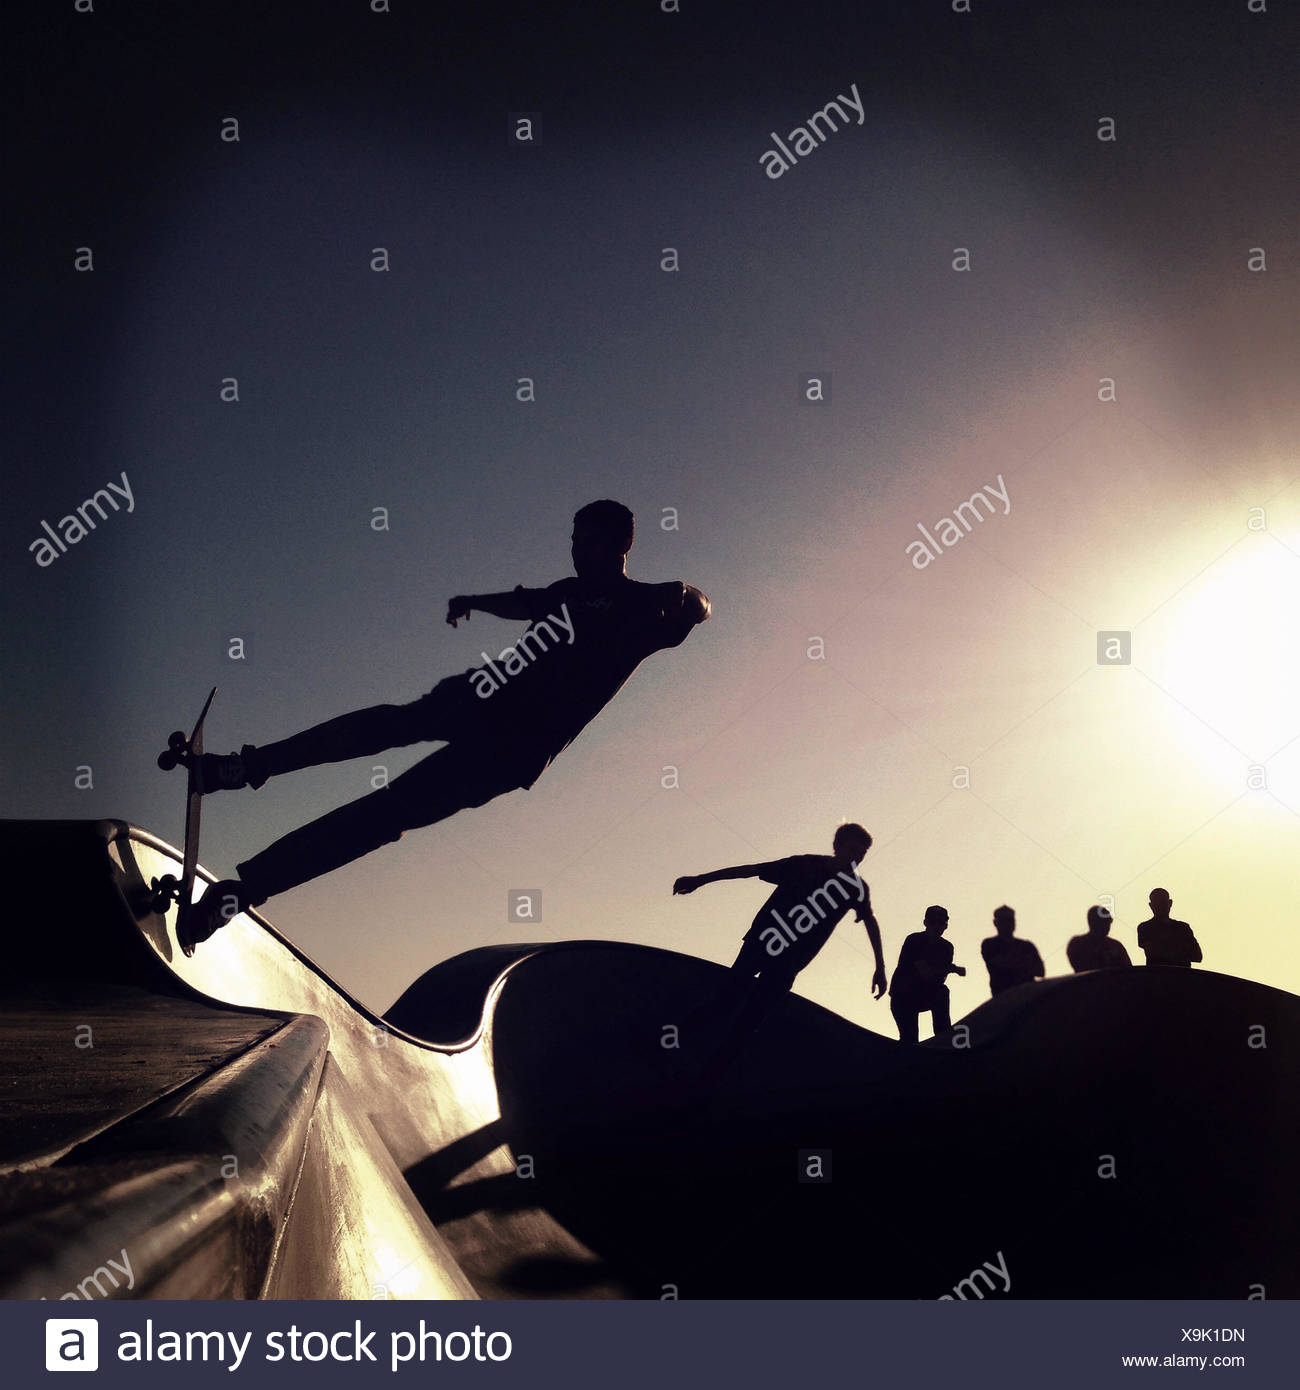 Silhouette of skaters in skateboard park at sunset - Stock Image